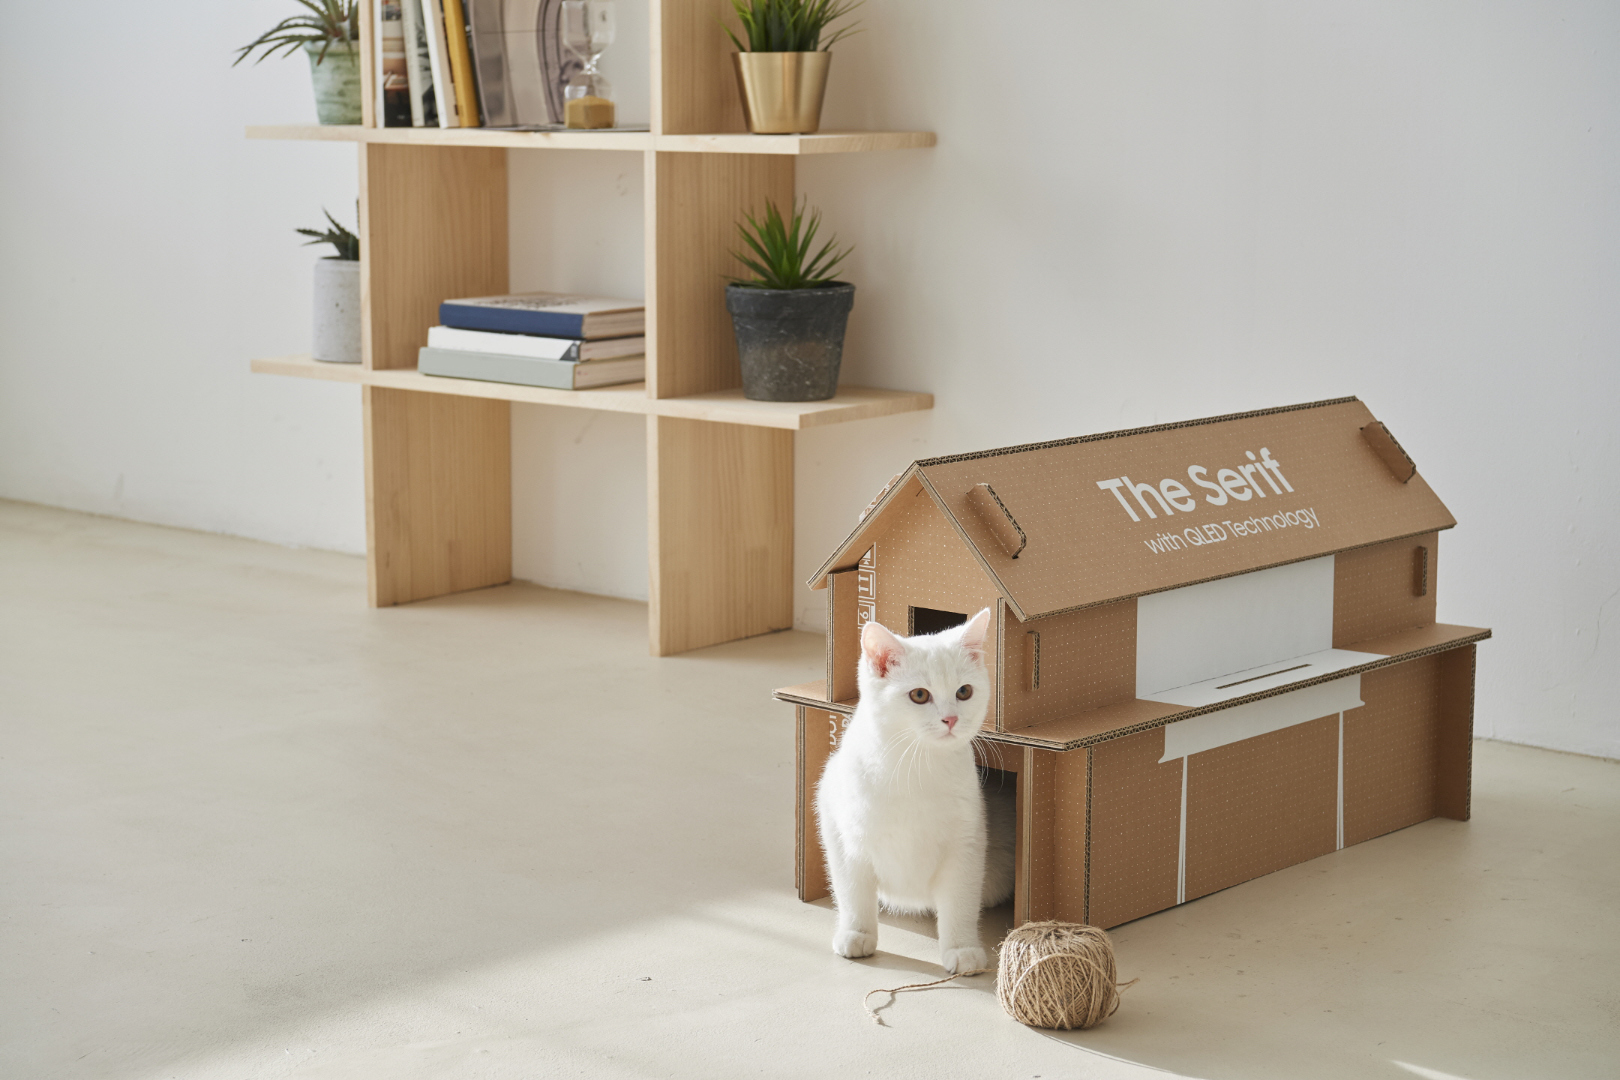 Samsung Lifestyle TVs to come in eco-friendly boxes that can be reused to make pet houses